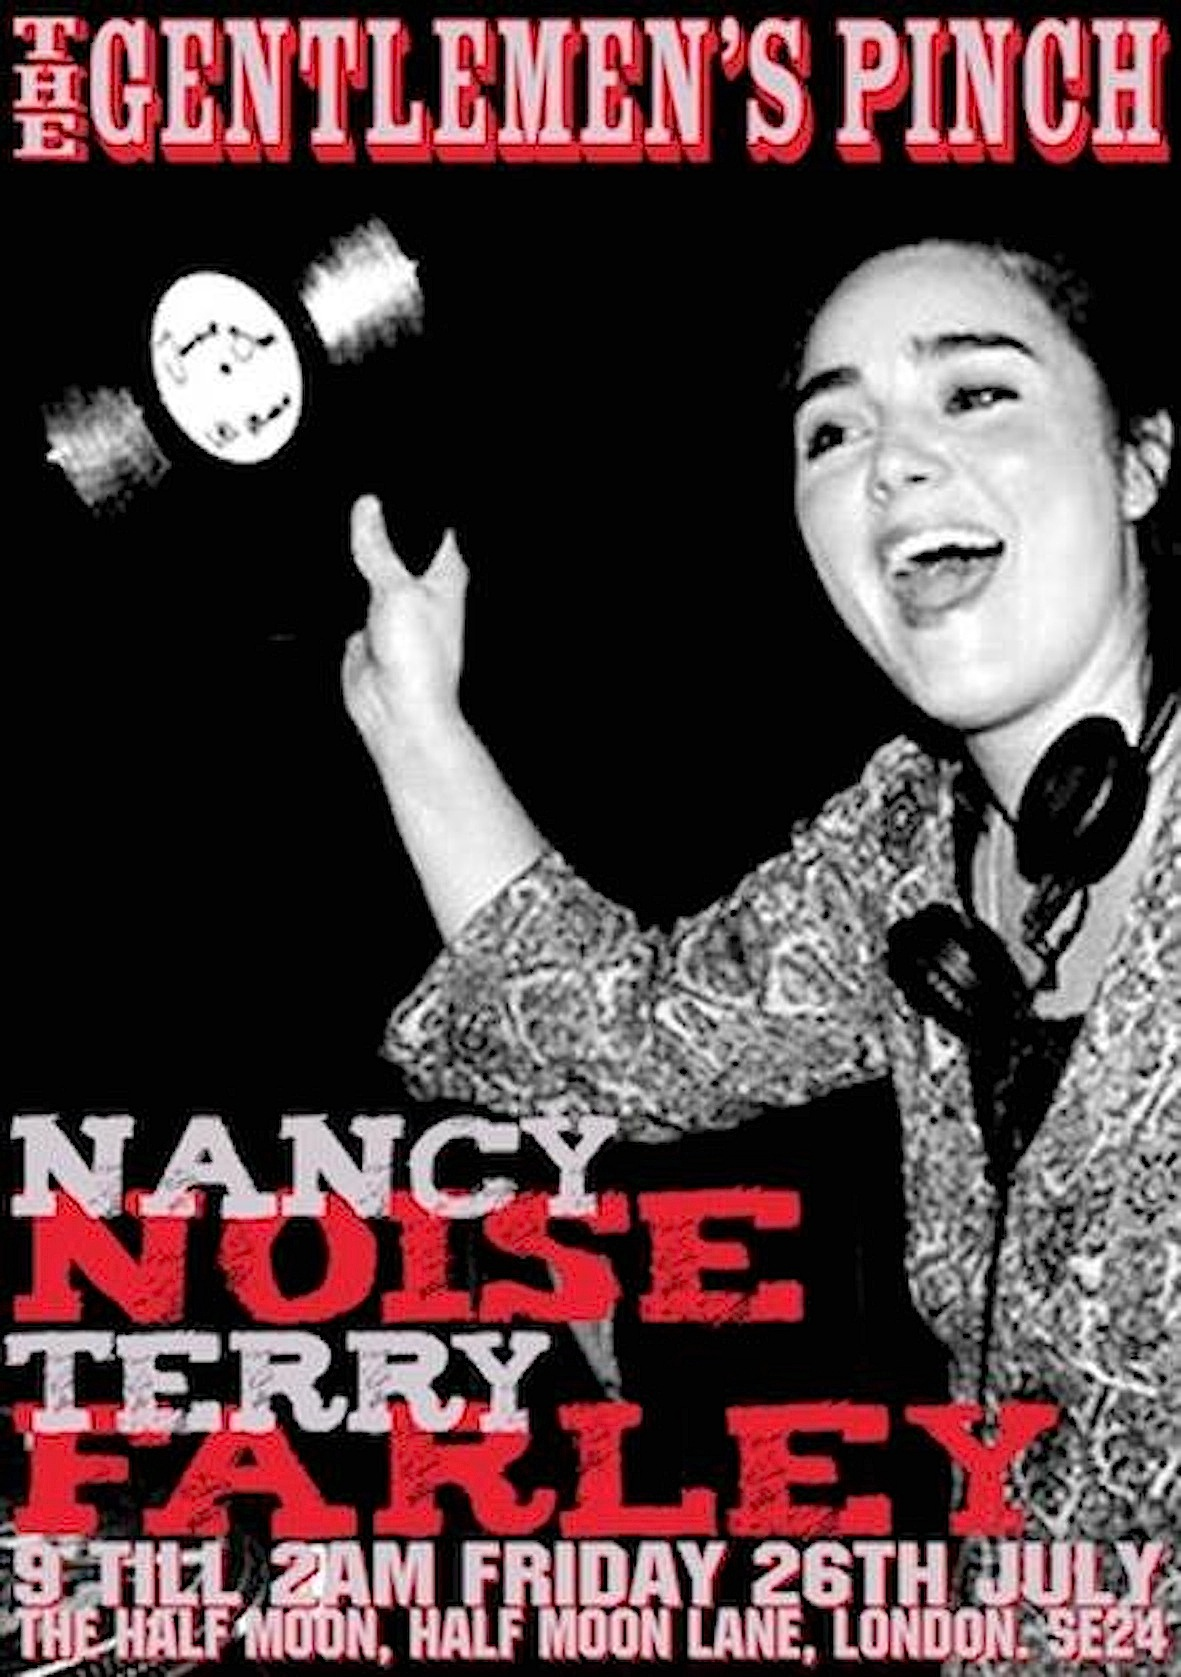 Test Pressing, Mixes, Dr Rob, Nancy Noise, Future, The Gentleman`s Pinch